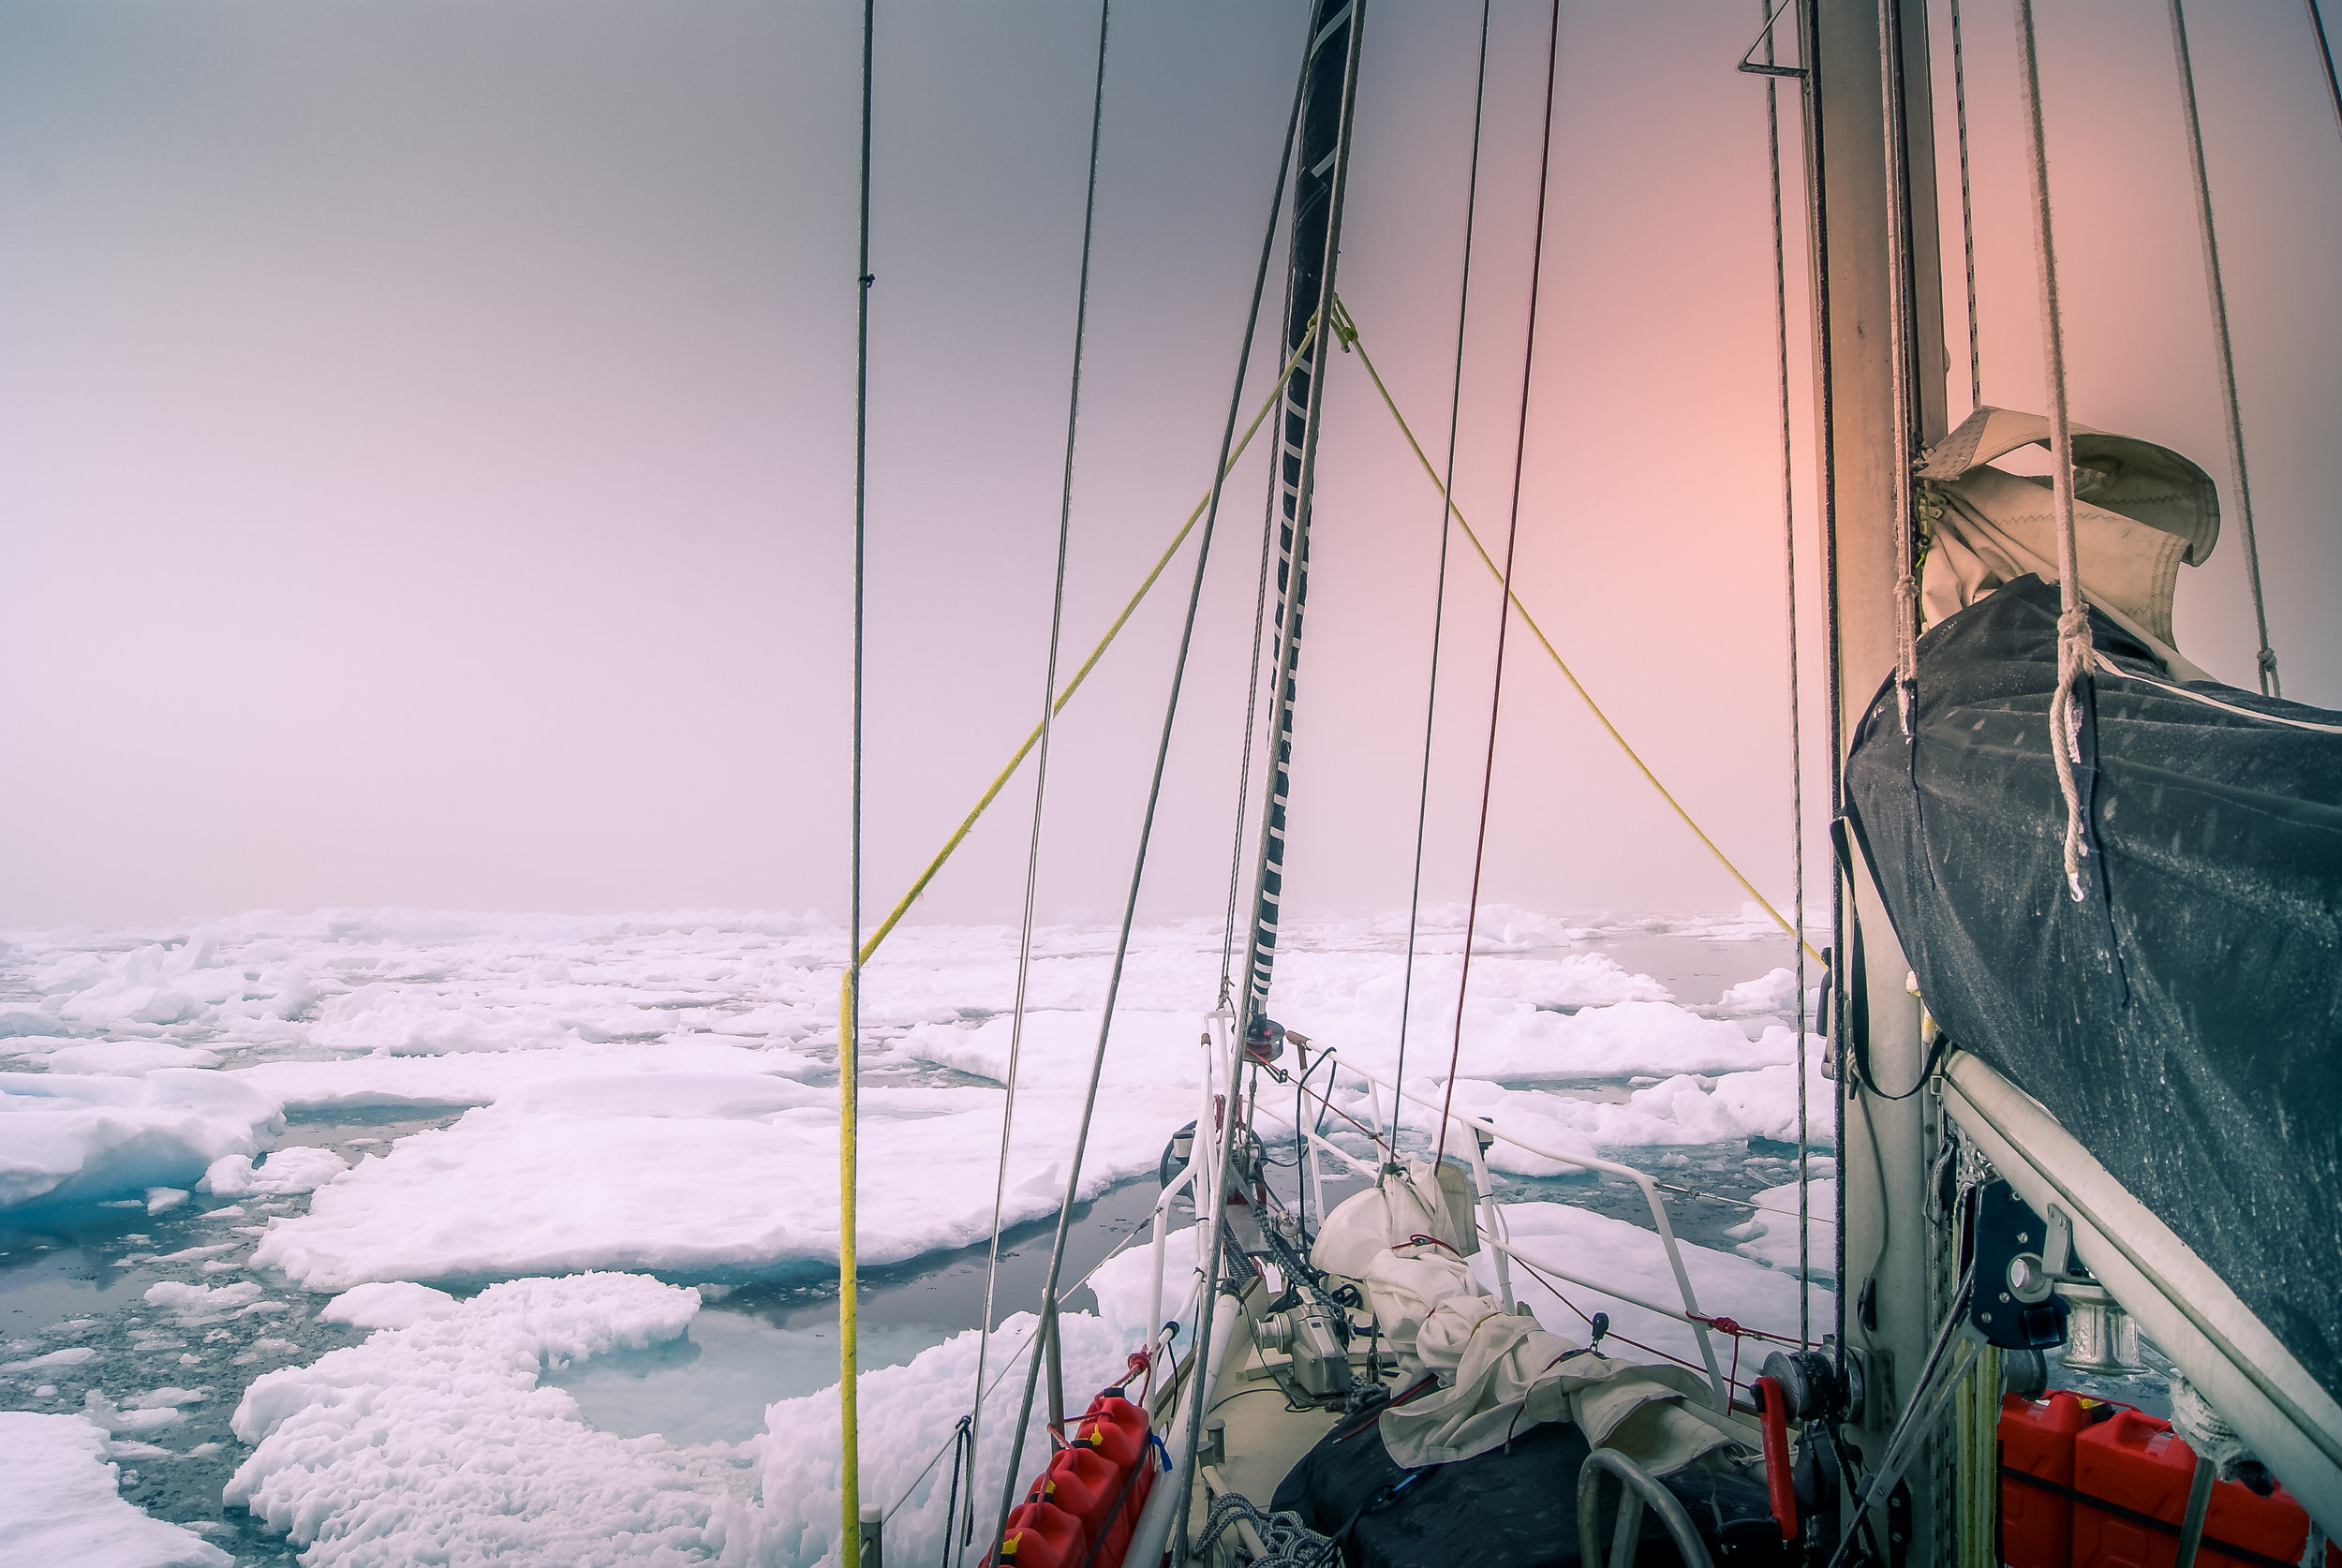 MATTER OF THE SOUL |CONCENTRATION - Kat Austen explores the impact of changes in Arctic ice. The piece draws analogies between the melting of water from ice to ocean, human migration and the changing of identity online.